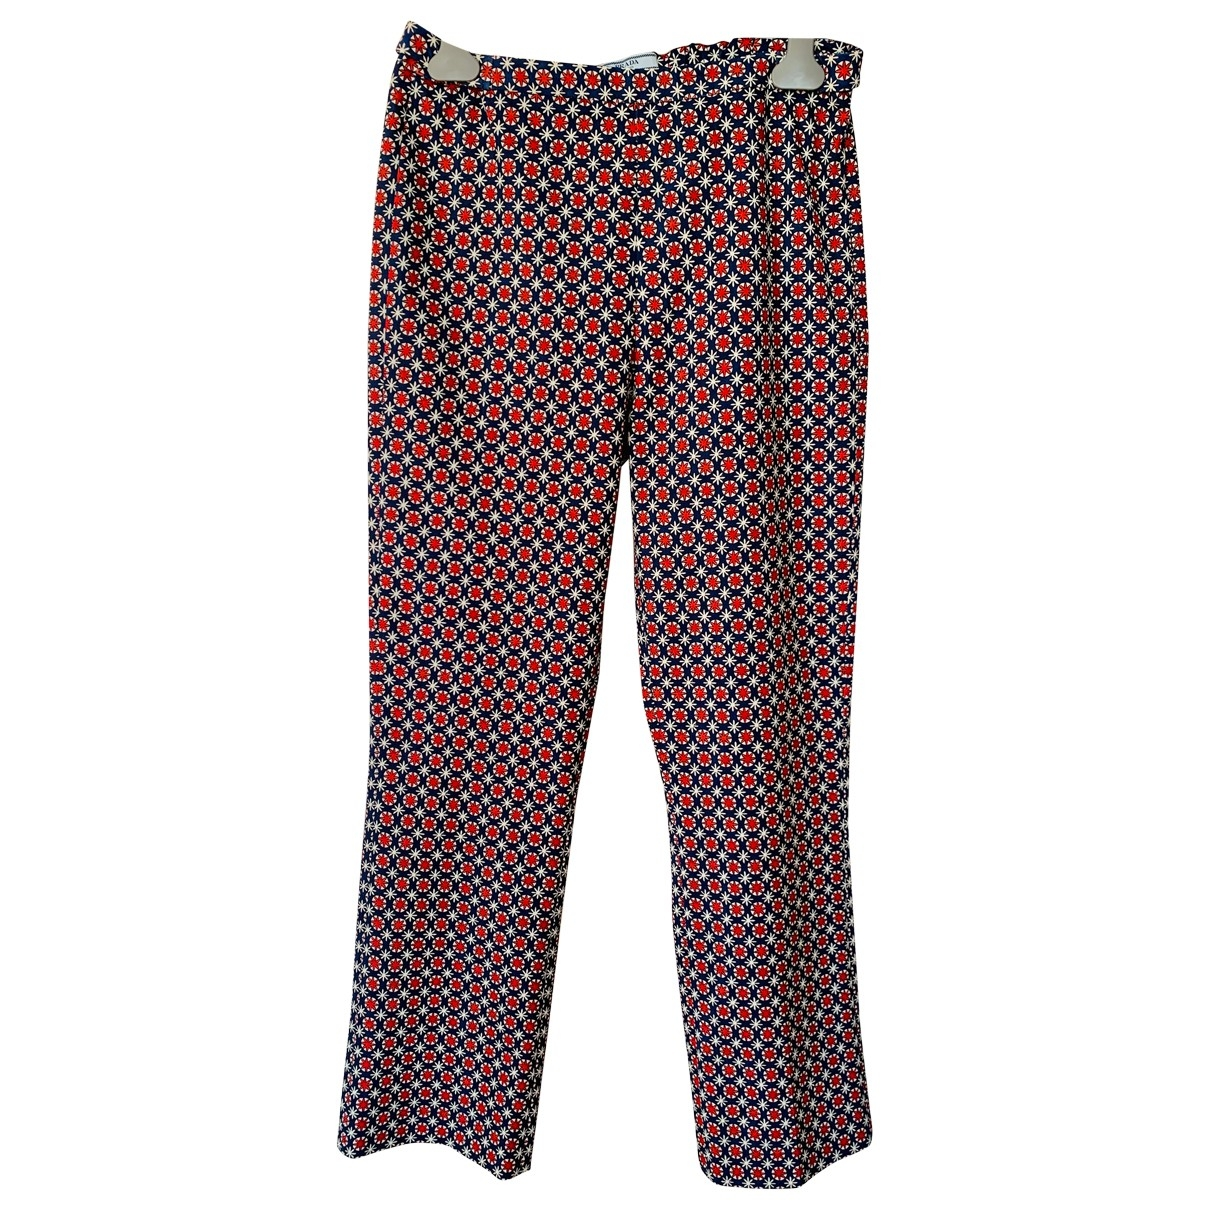 Prada \N Multicolour Trousers for Women 44 IT